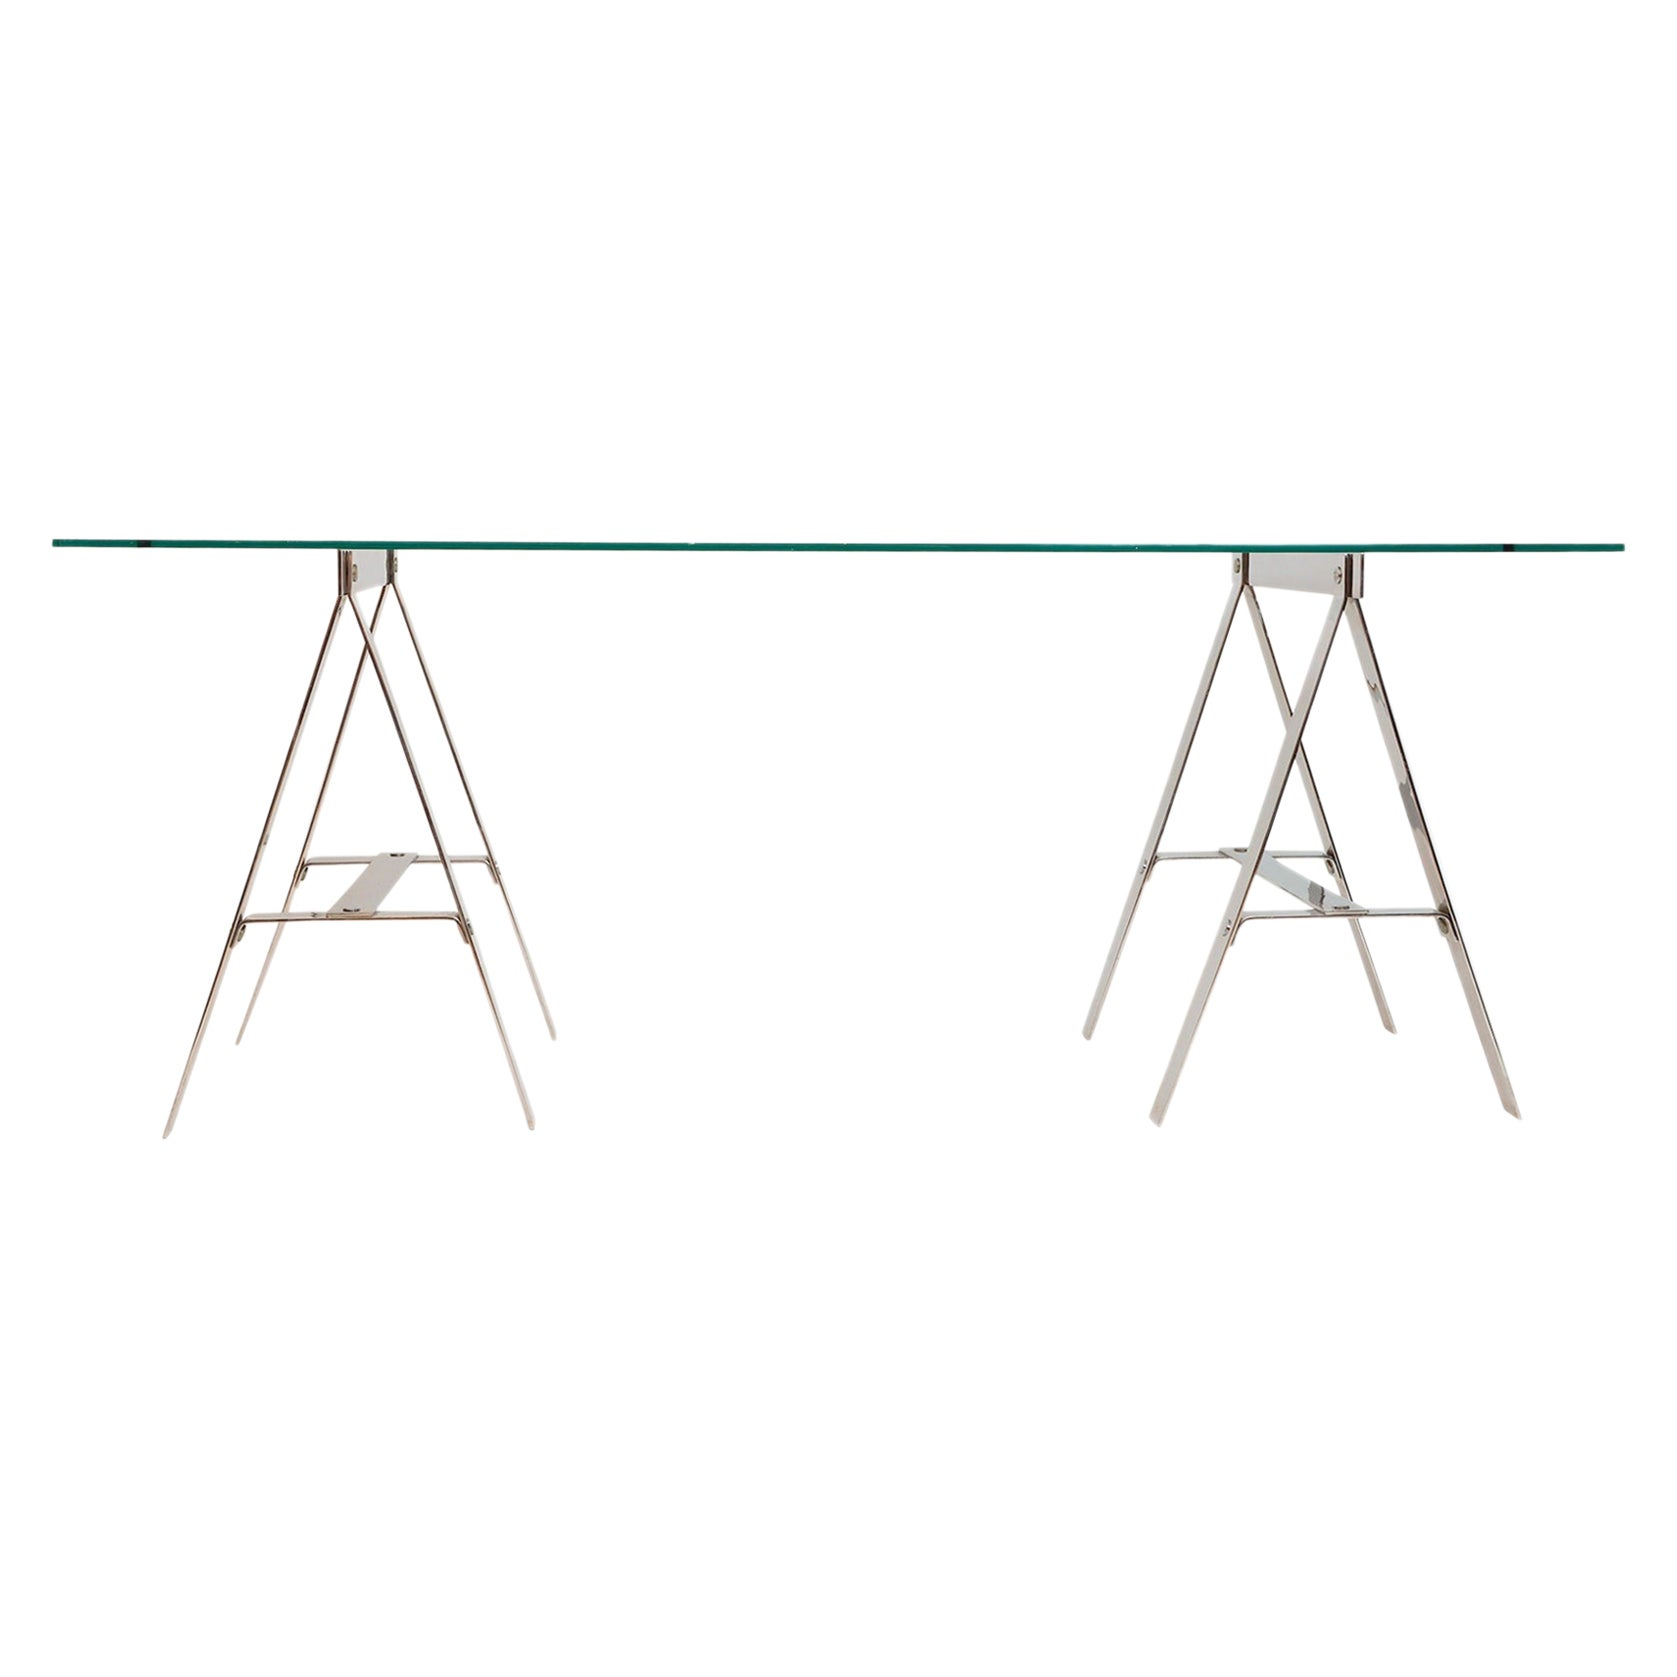 Minimalist Vittorio Introini Trestle Table